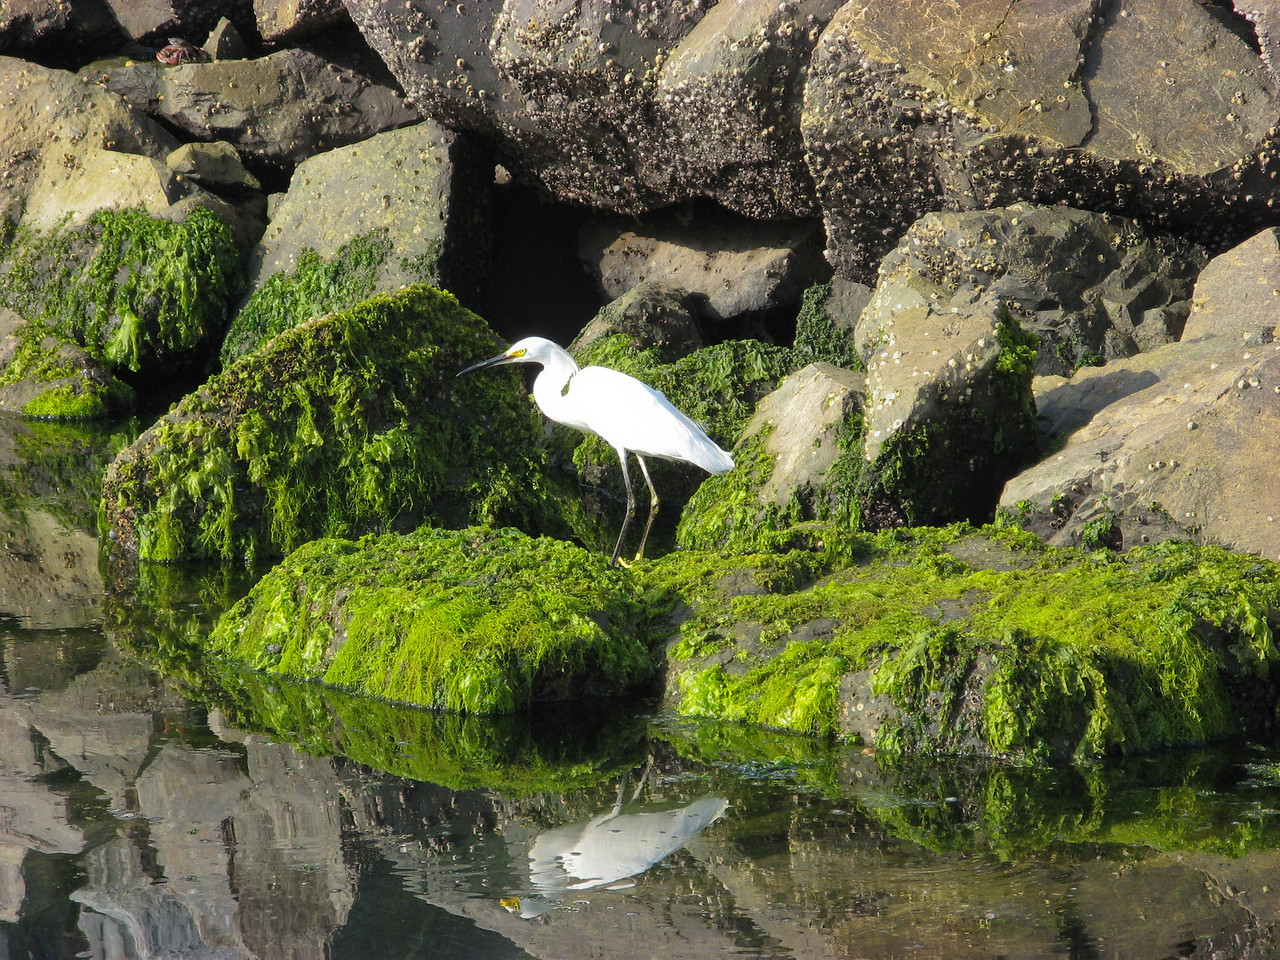 A Snowy Egret on the rocks in the harbor at Ensenada, Mexico.